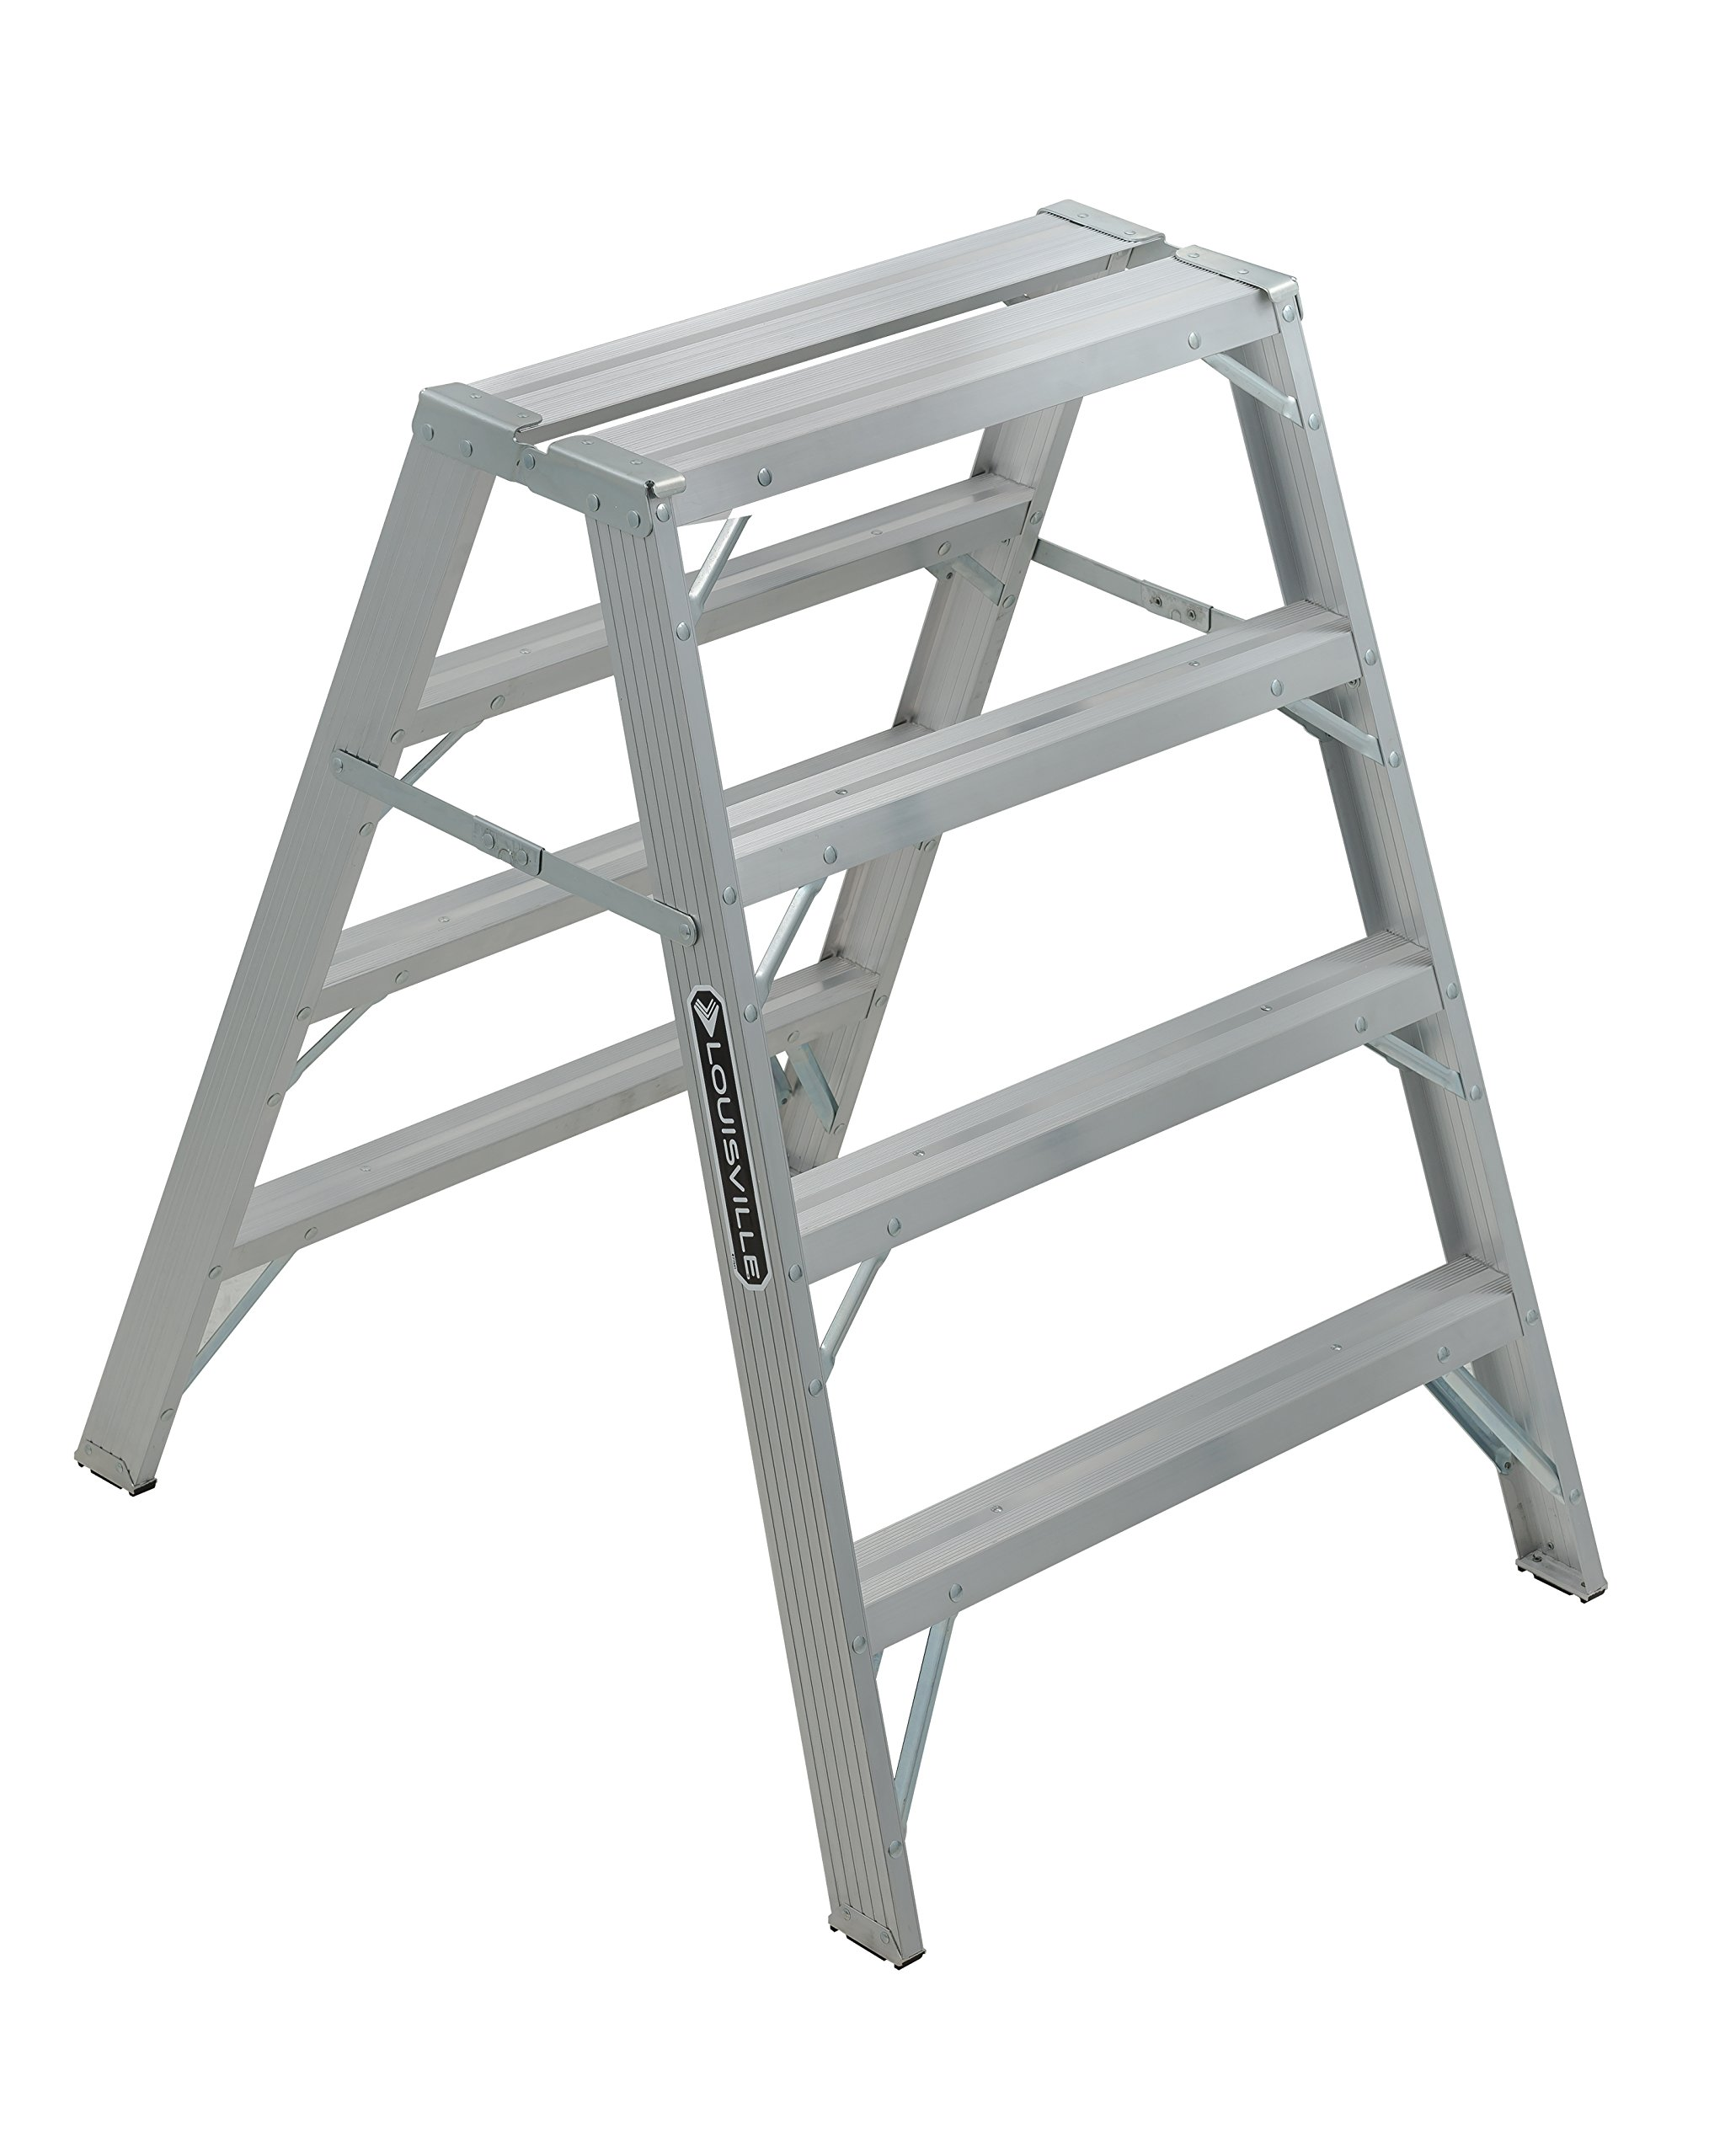 Louisville Ladder 4-Foot Aluminum Sawhorse, 300-Pound Capacity, L-2032-04